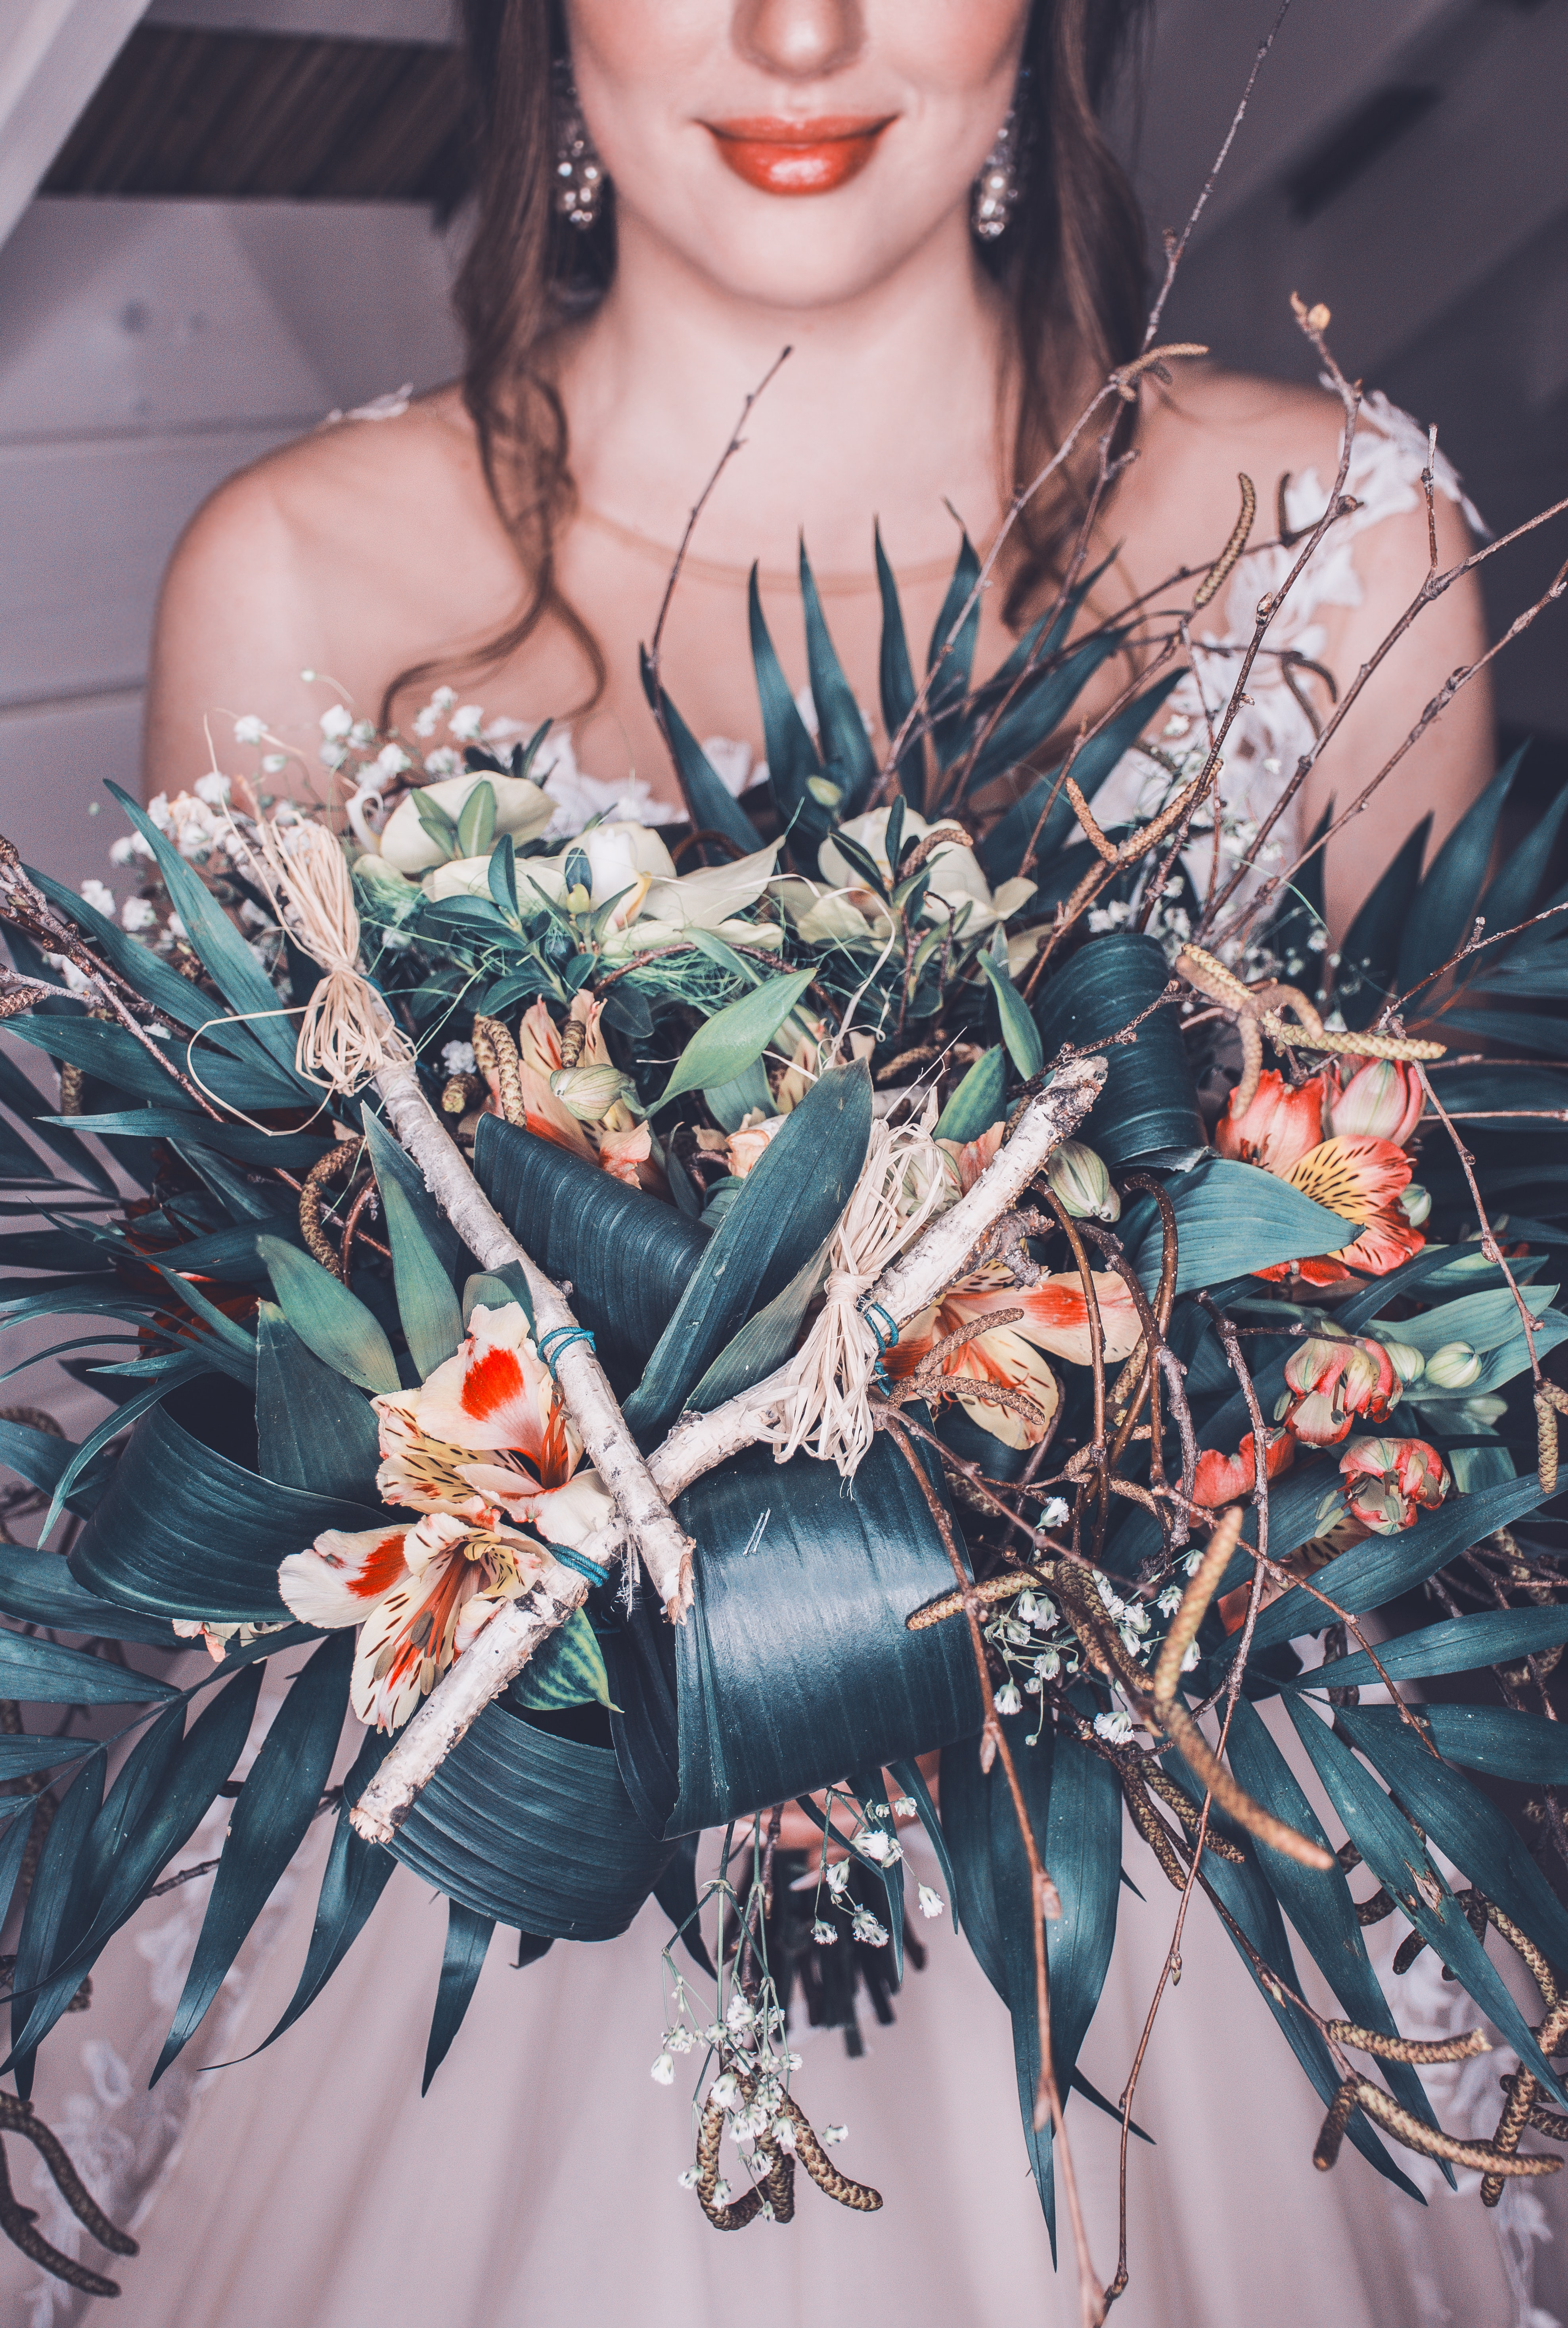 selective focus photography of woman holding flower bouquet